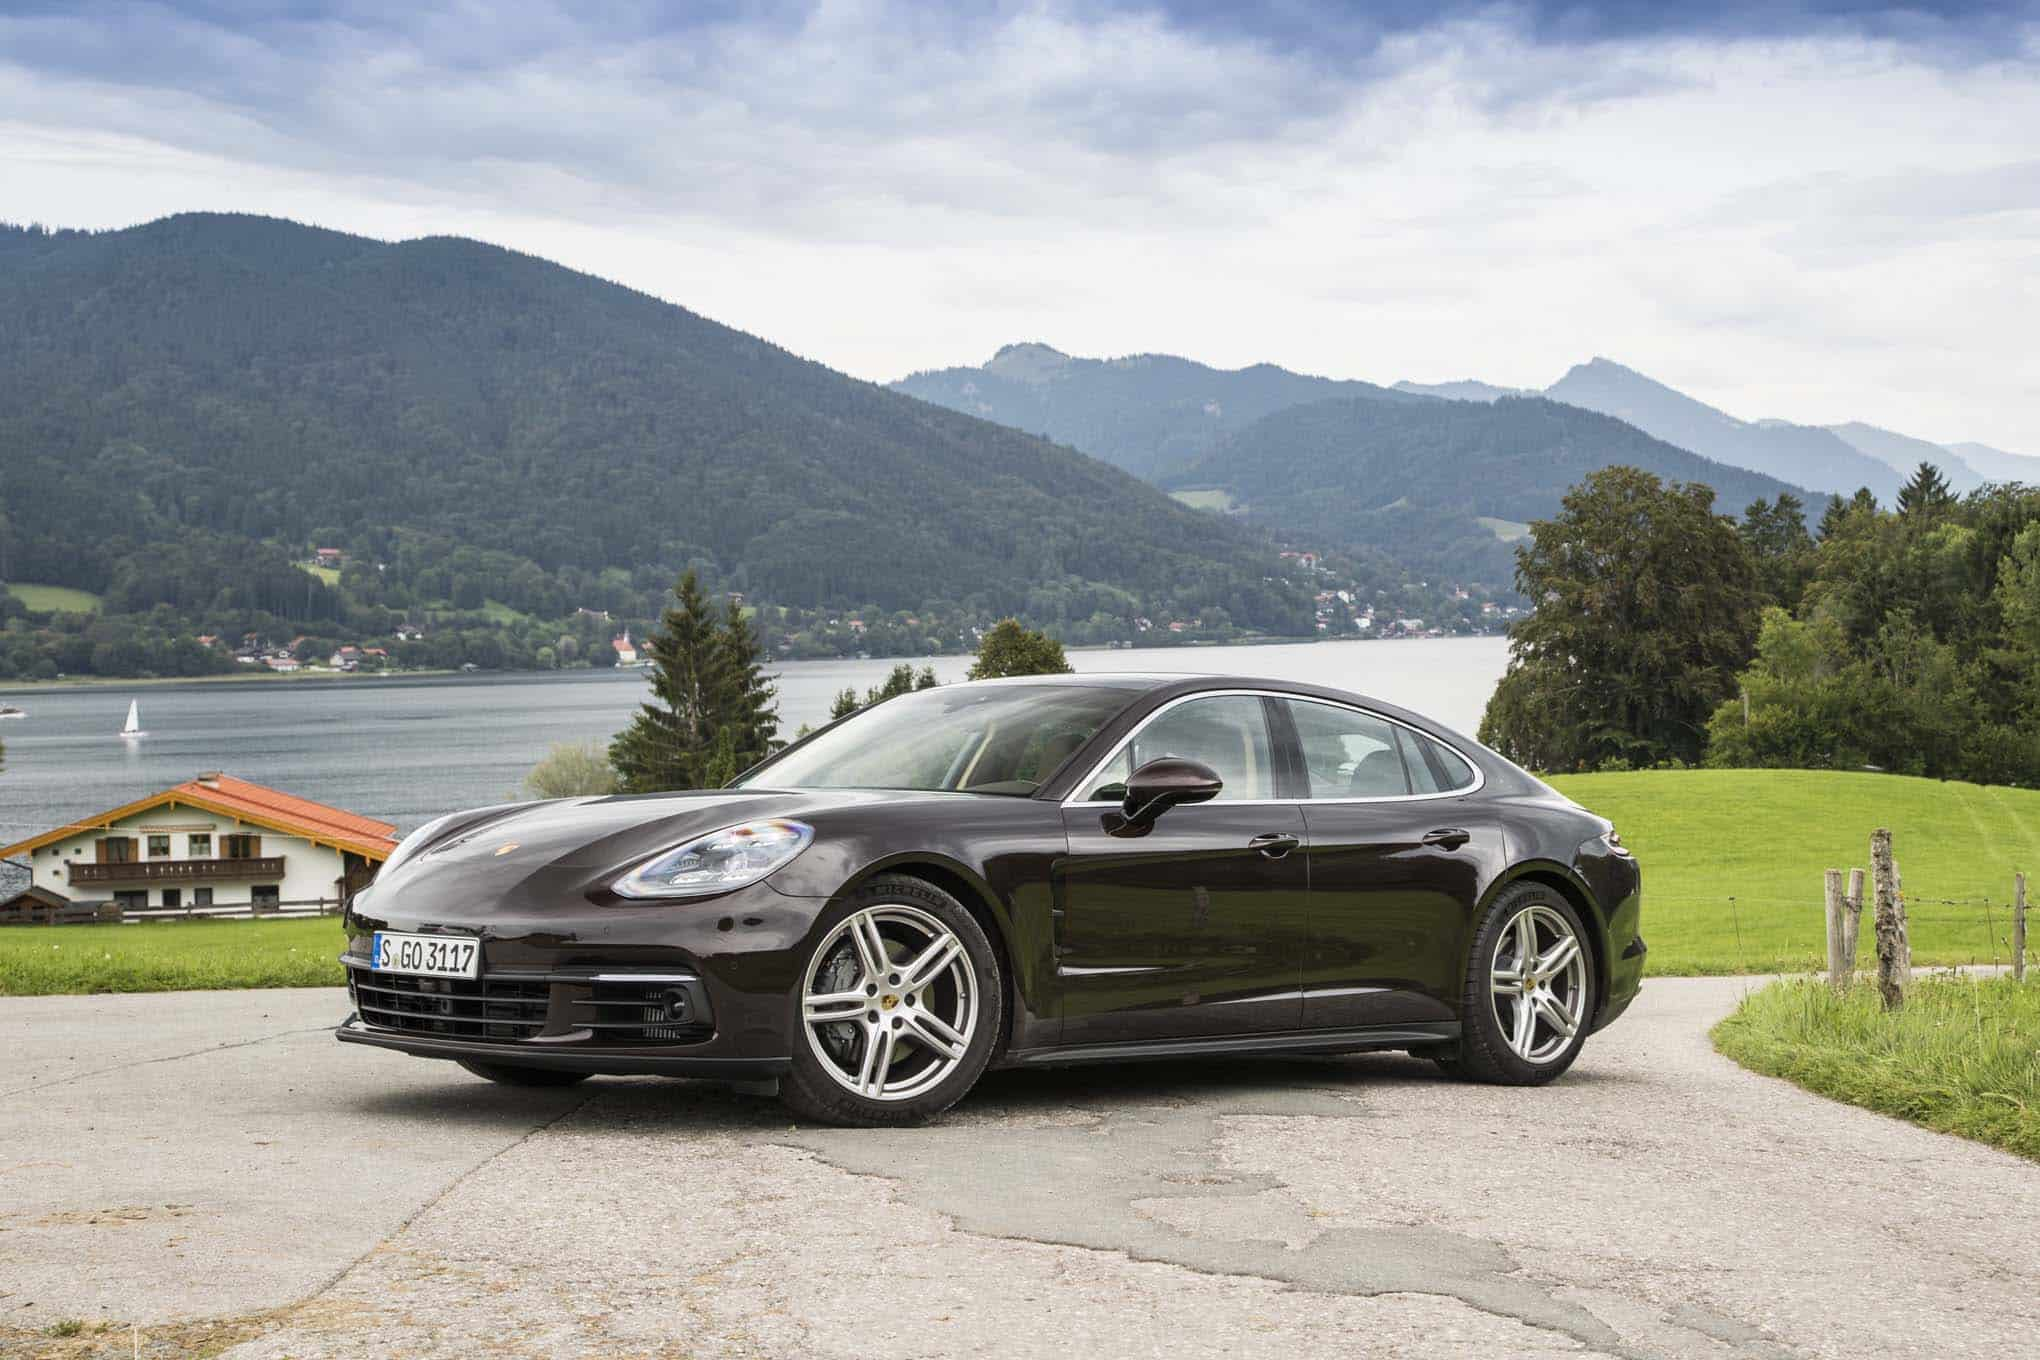 2017-Porsche-Panamera-4S-front-three-quarter